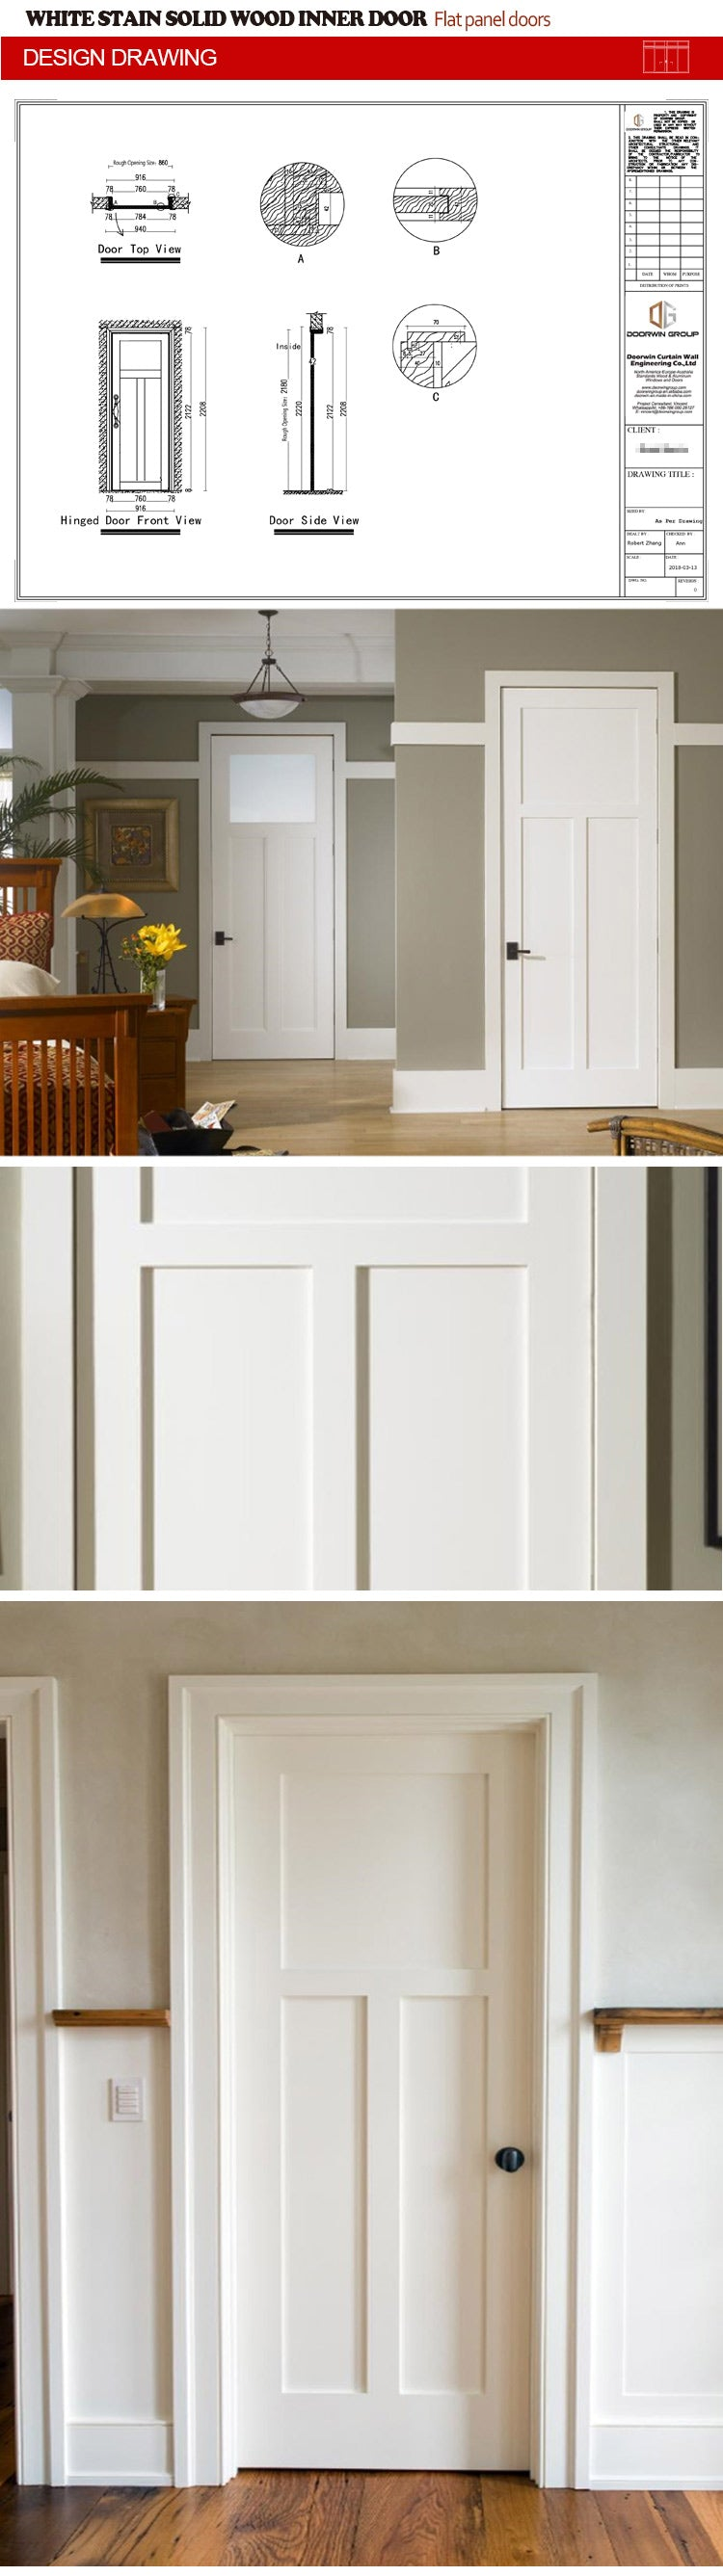 hinged interior door-22-01